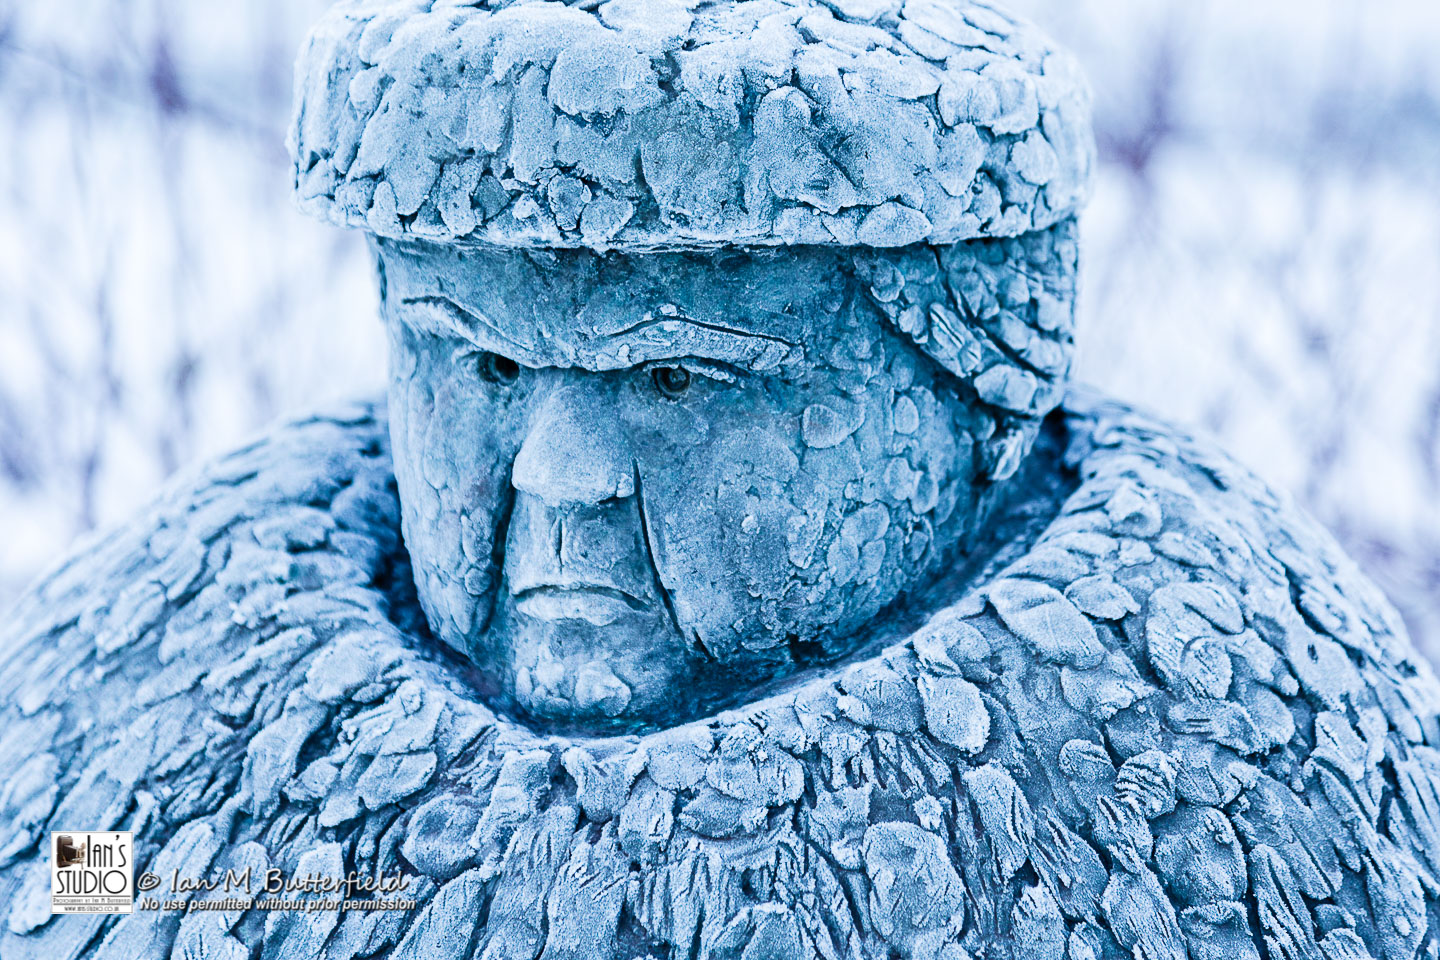 ACADEMY BITE: Snow and Ice #6 – Statue of a grumpy woman